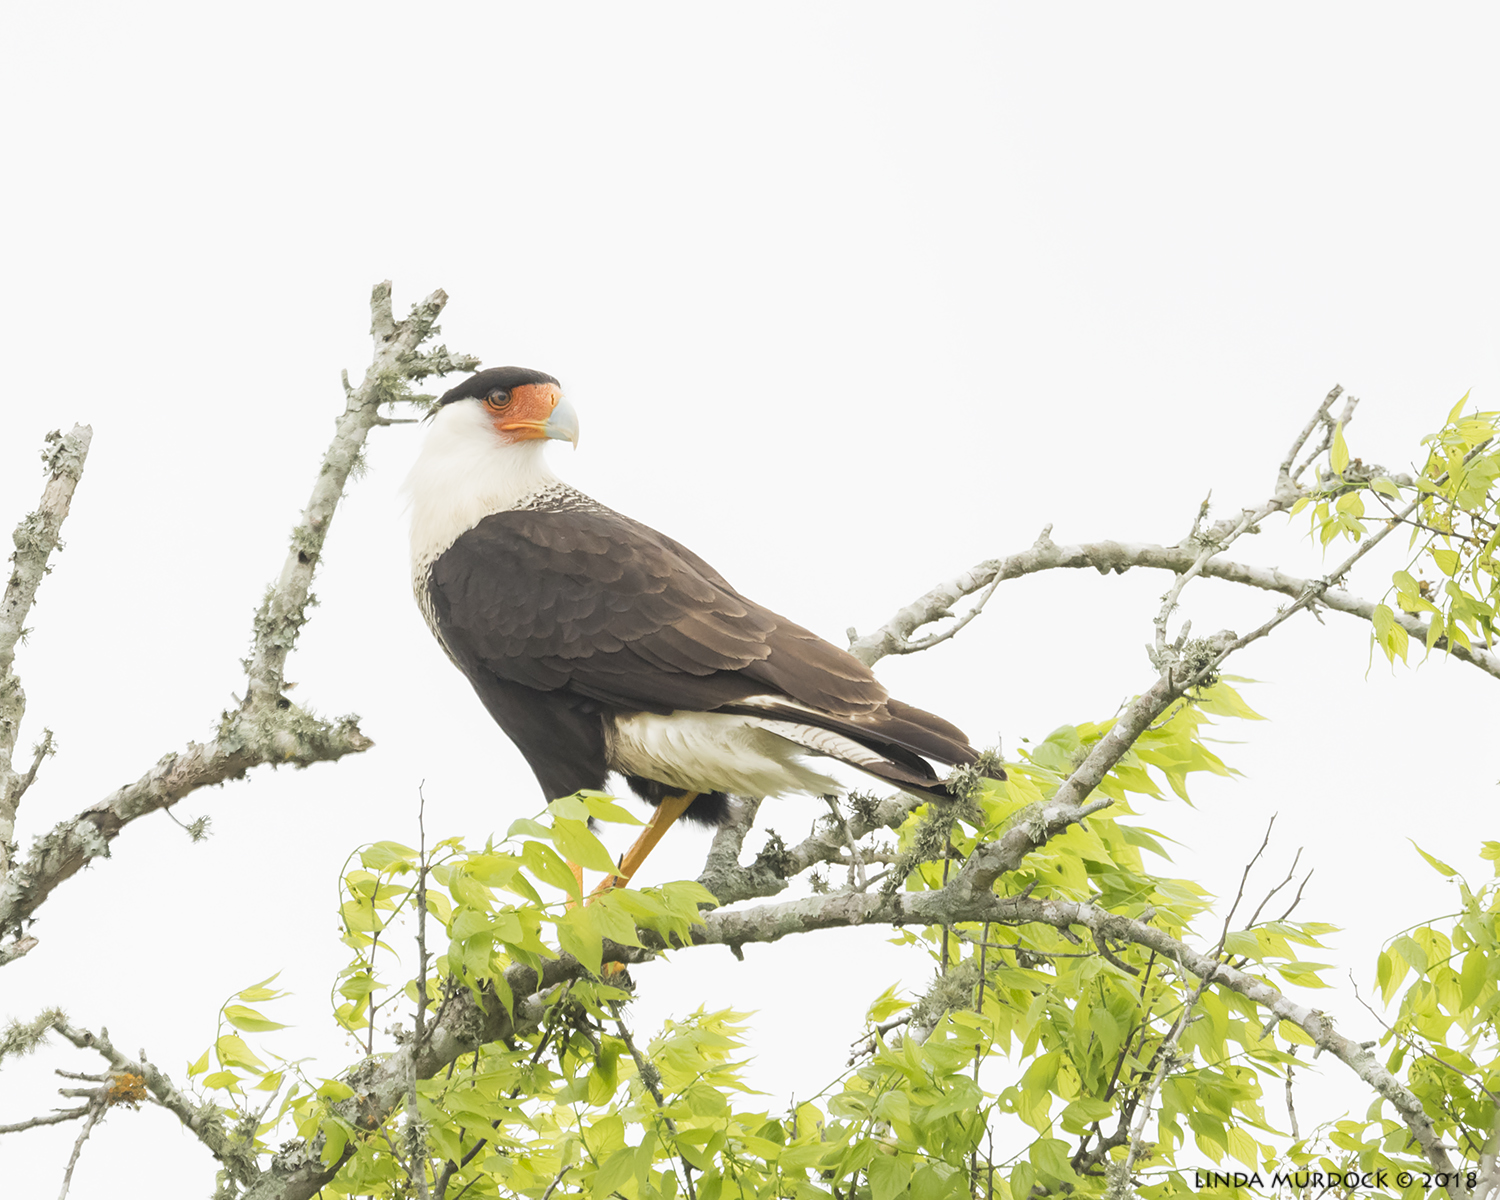 Wary Crested Caracara in the tree tops Nikon D810 with NIKKOR 500mm f/4E VR + Nikon 1.4x TC ~ 1/1600  sec f/6.3 ISO 1600